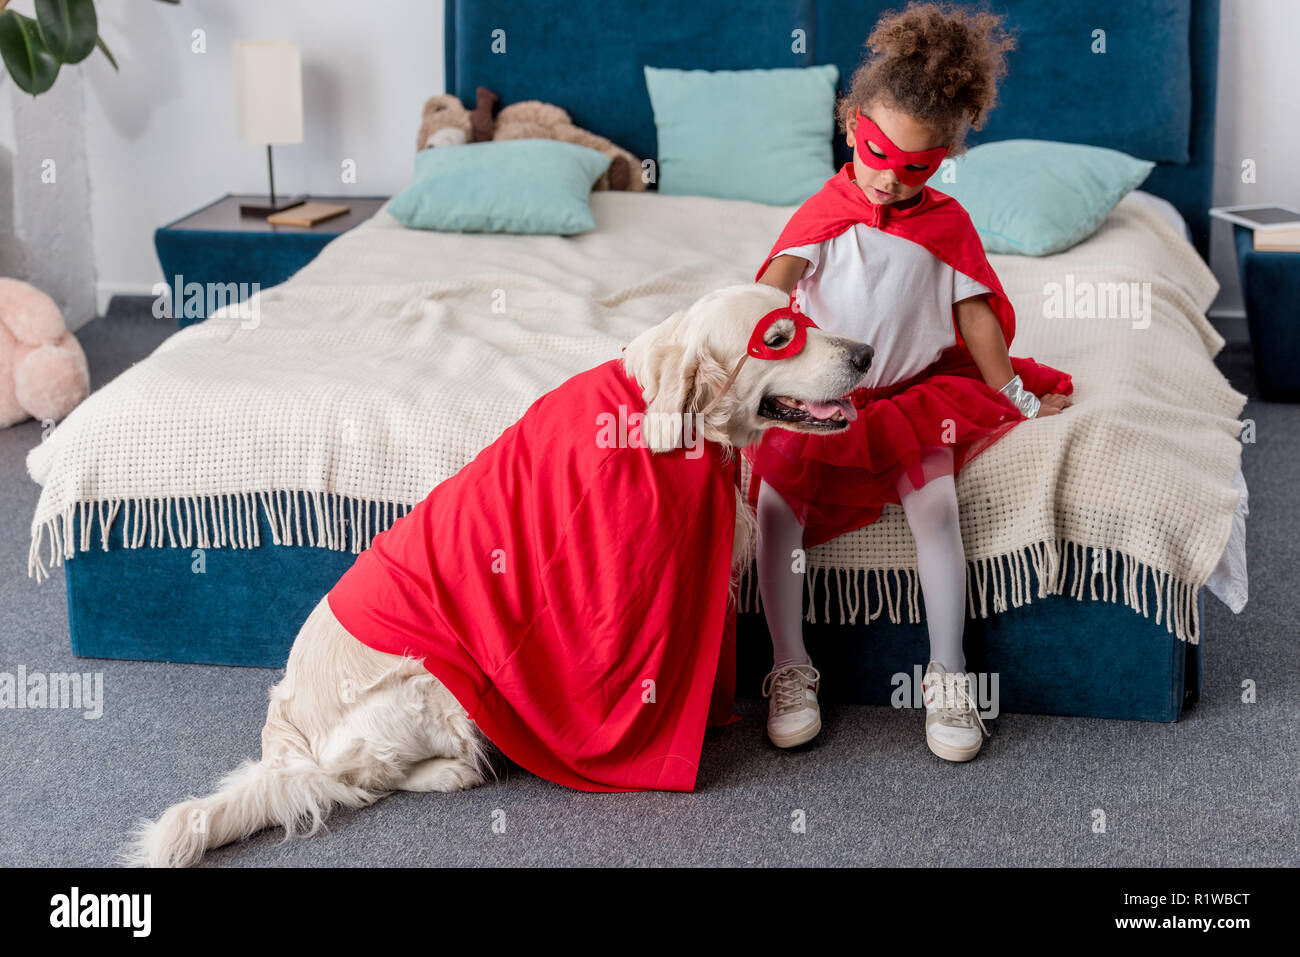 Adorable little african american kid playing with dog in superhero costumes in bedroom - Stock Image